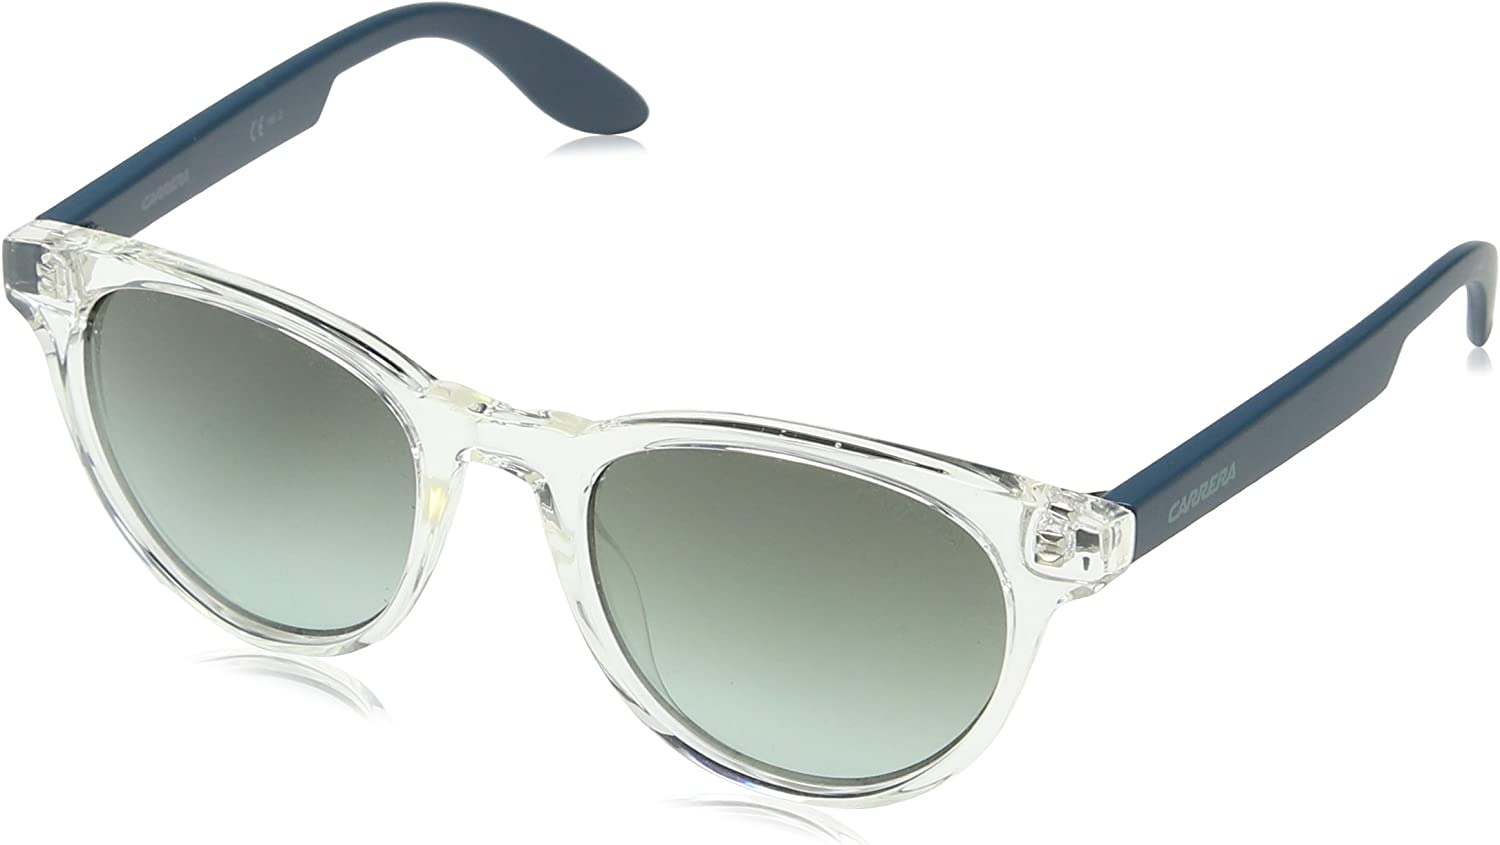 Carrera Junior CARRERINO 18 PL RHY Gafas de sol, Negro (Crystal Ptrl/Grey Green Ds), 46 Unisex-Niño